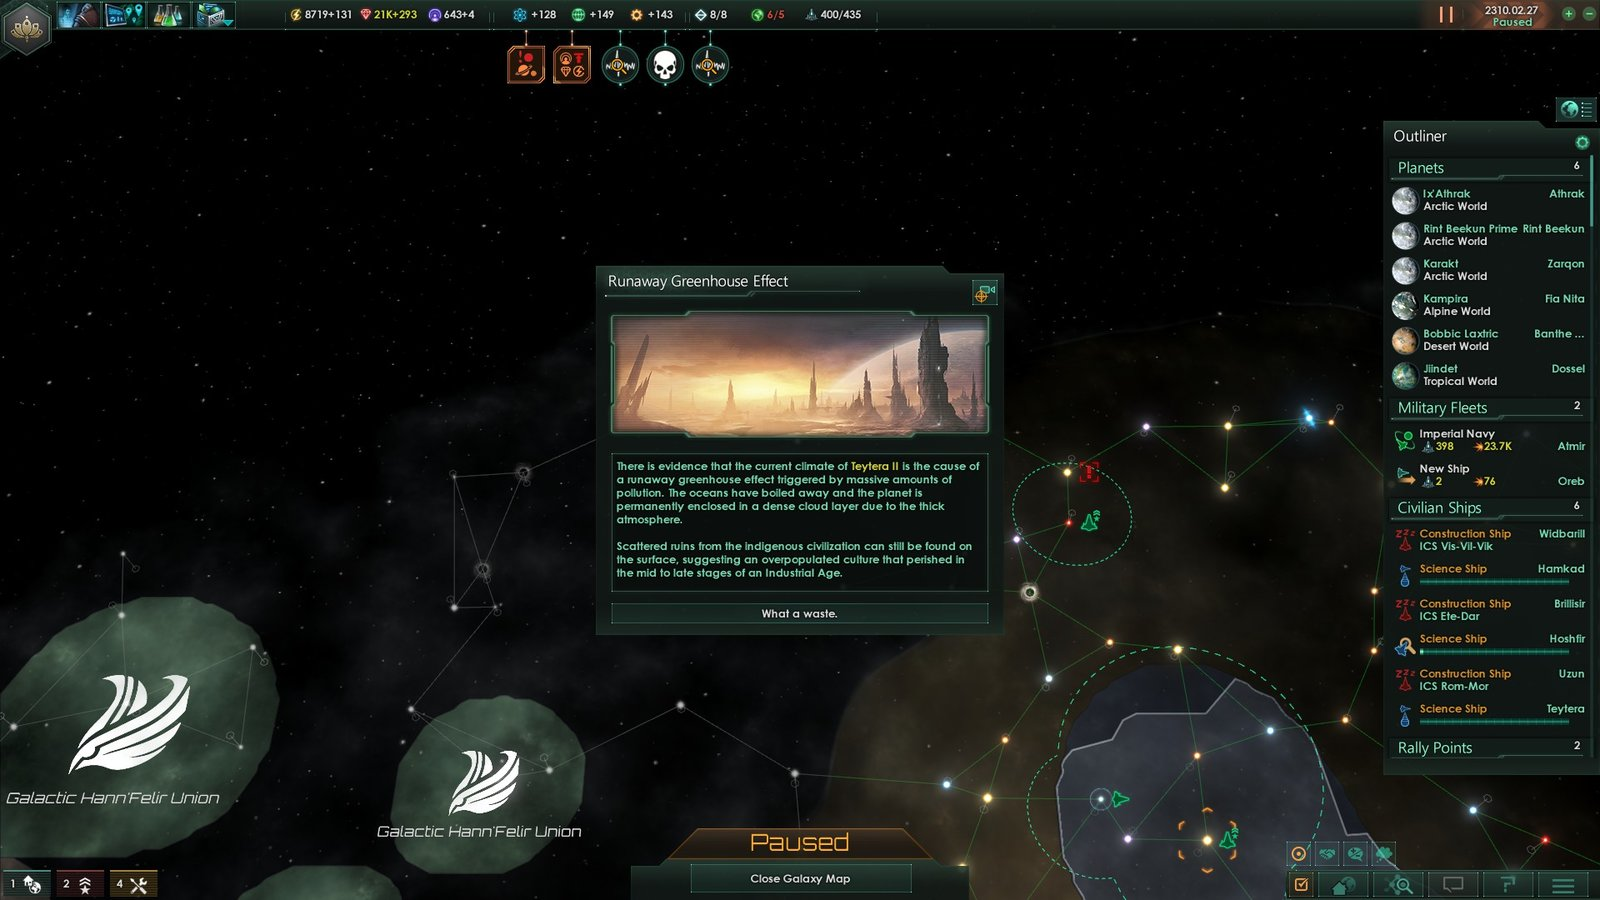 Climate change and overpopulation causing mass extinction in Stellaris